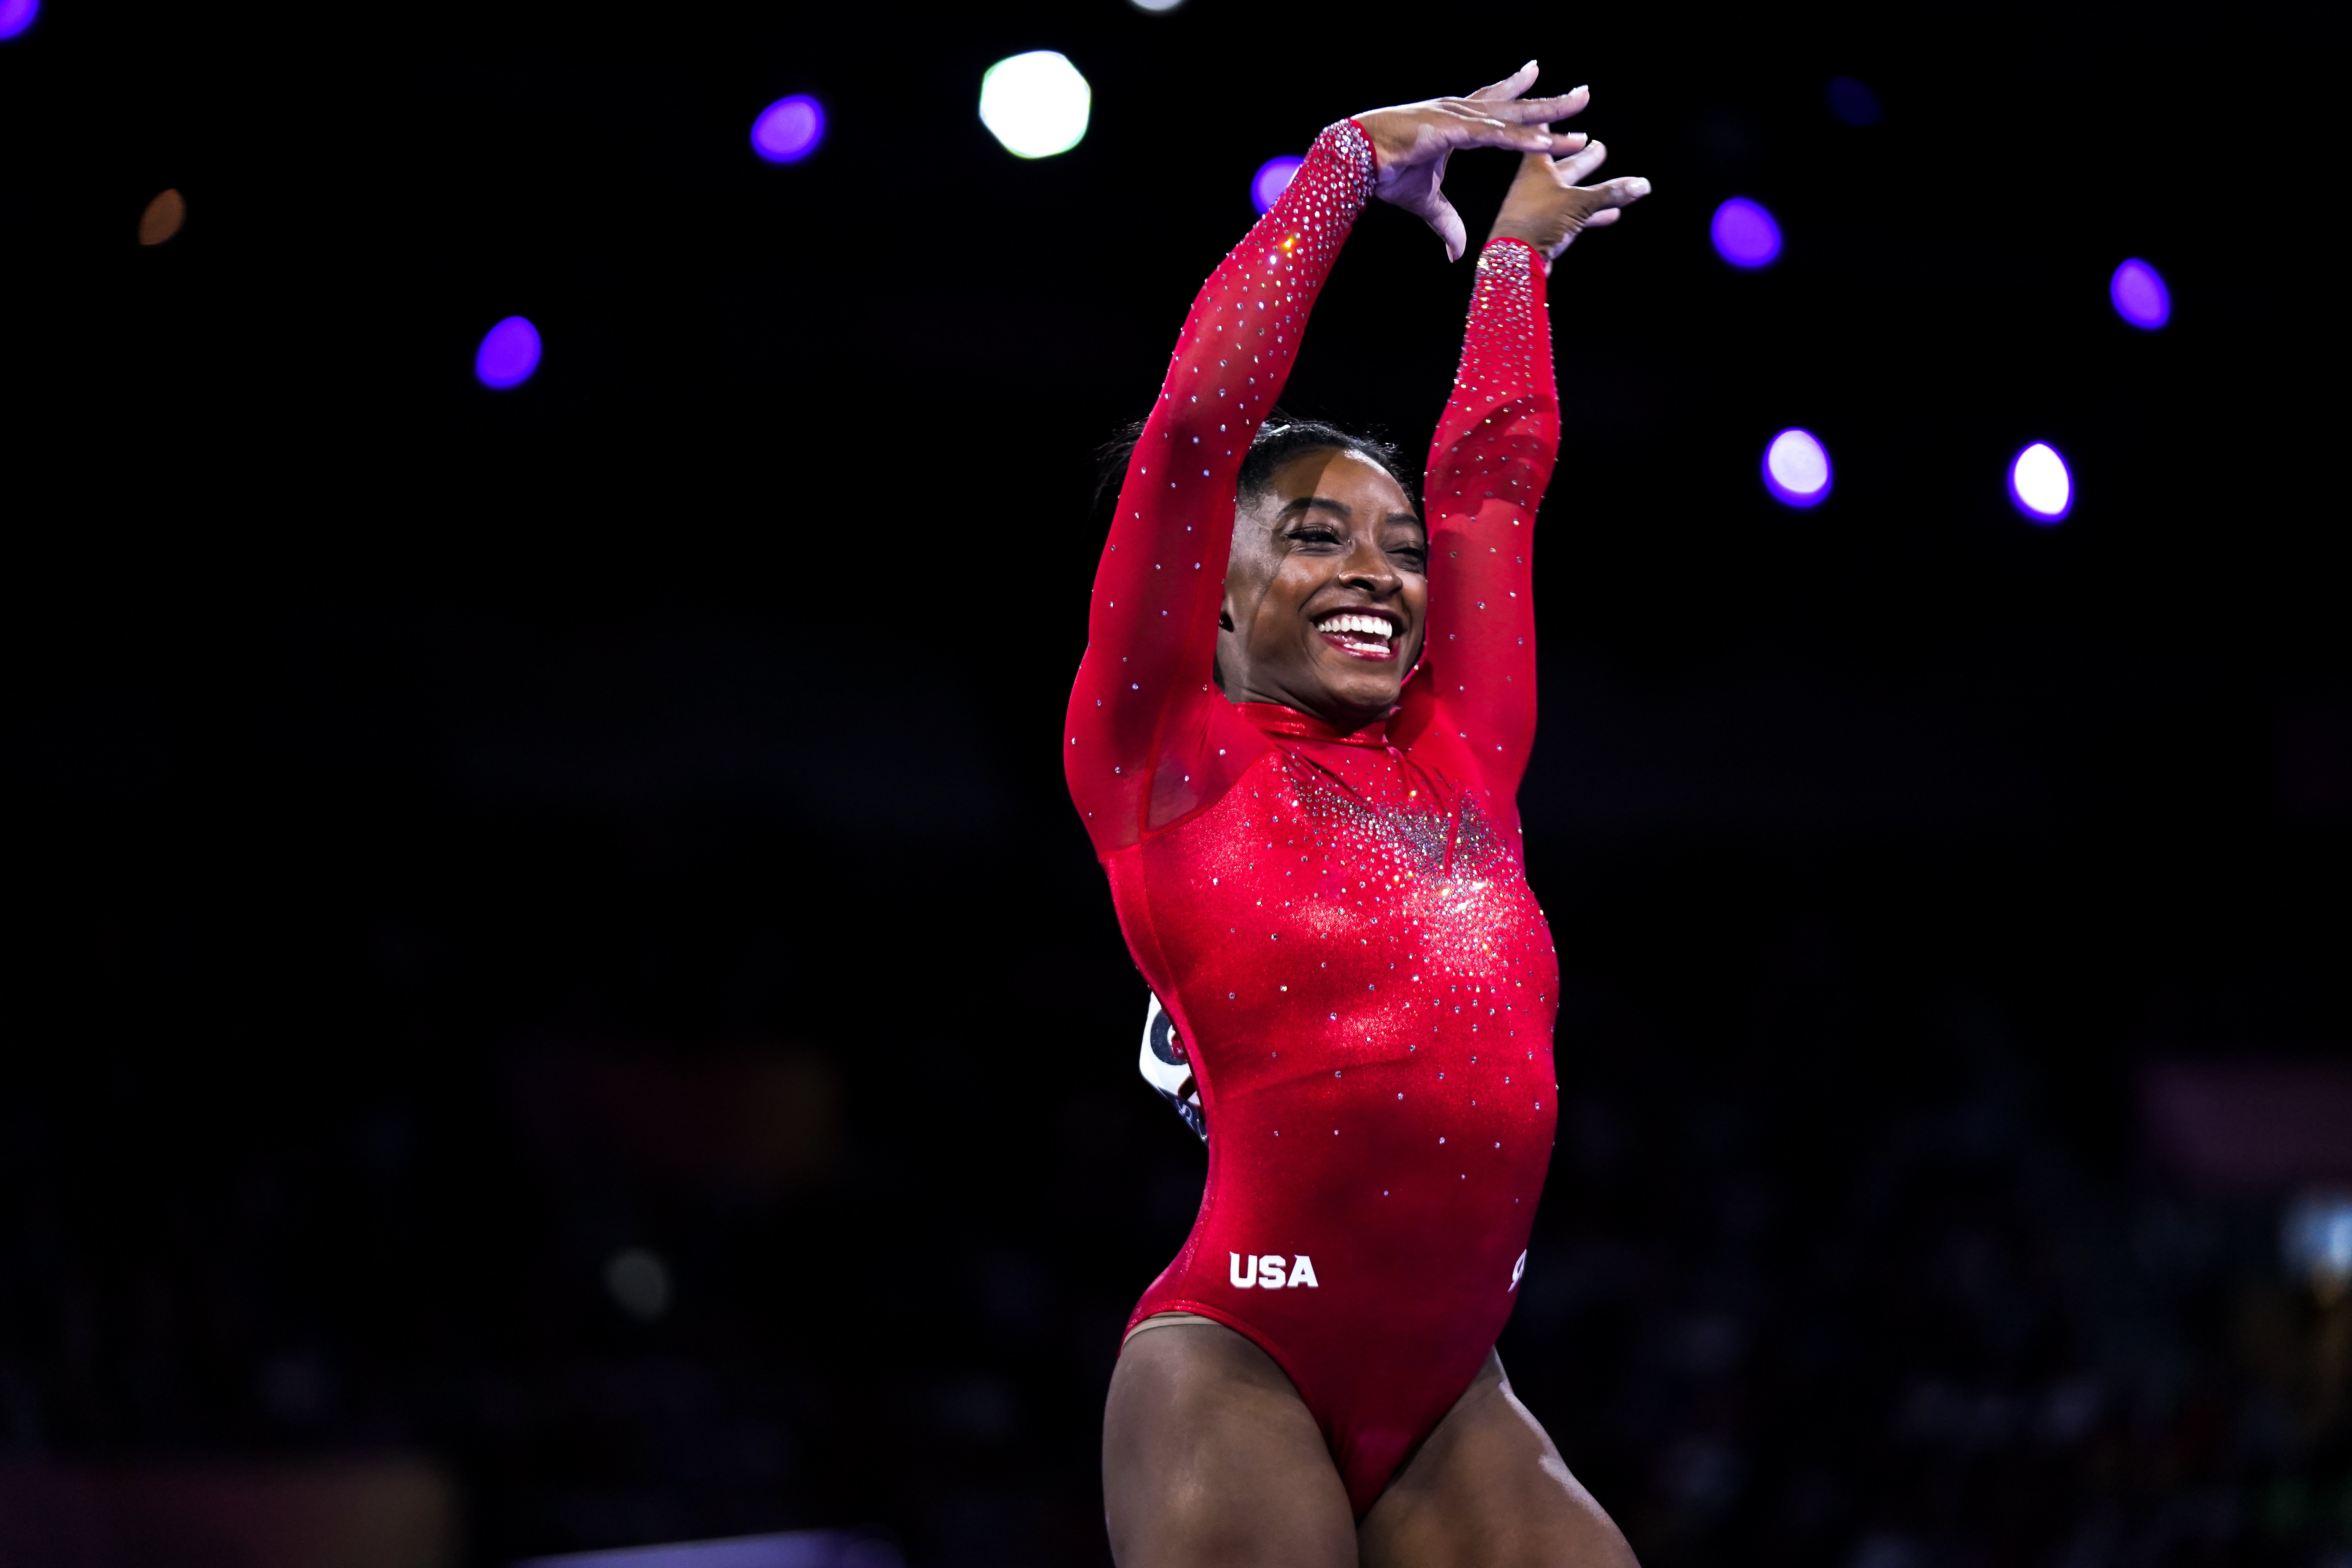 Simone Biles and Megan Rapinoe up for World Sport Star at Sports Personality awards